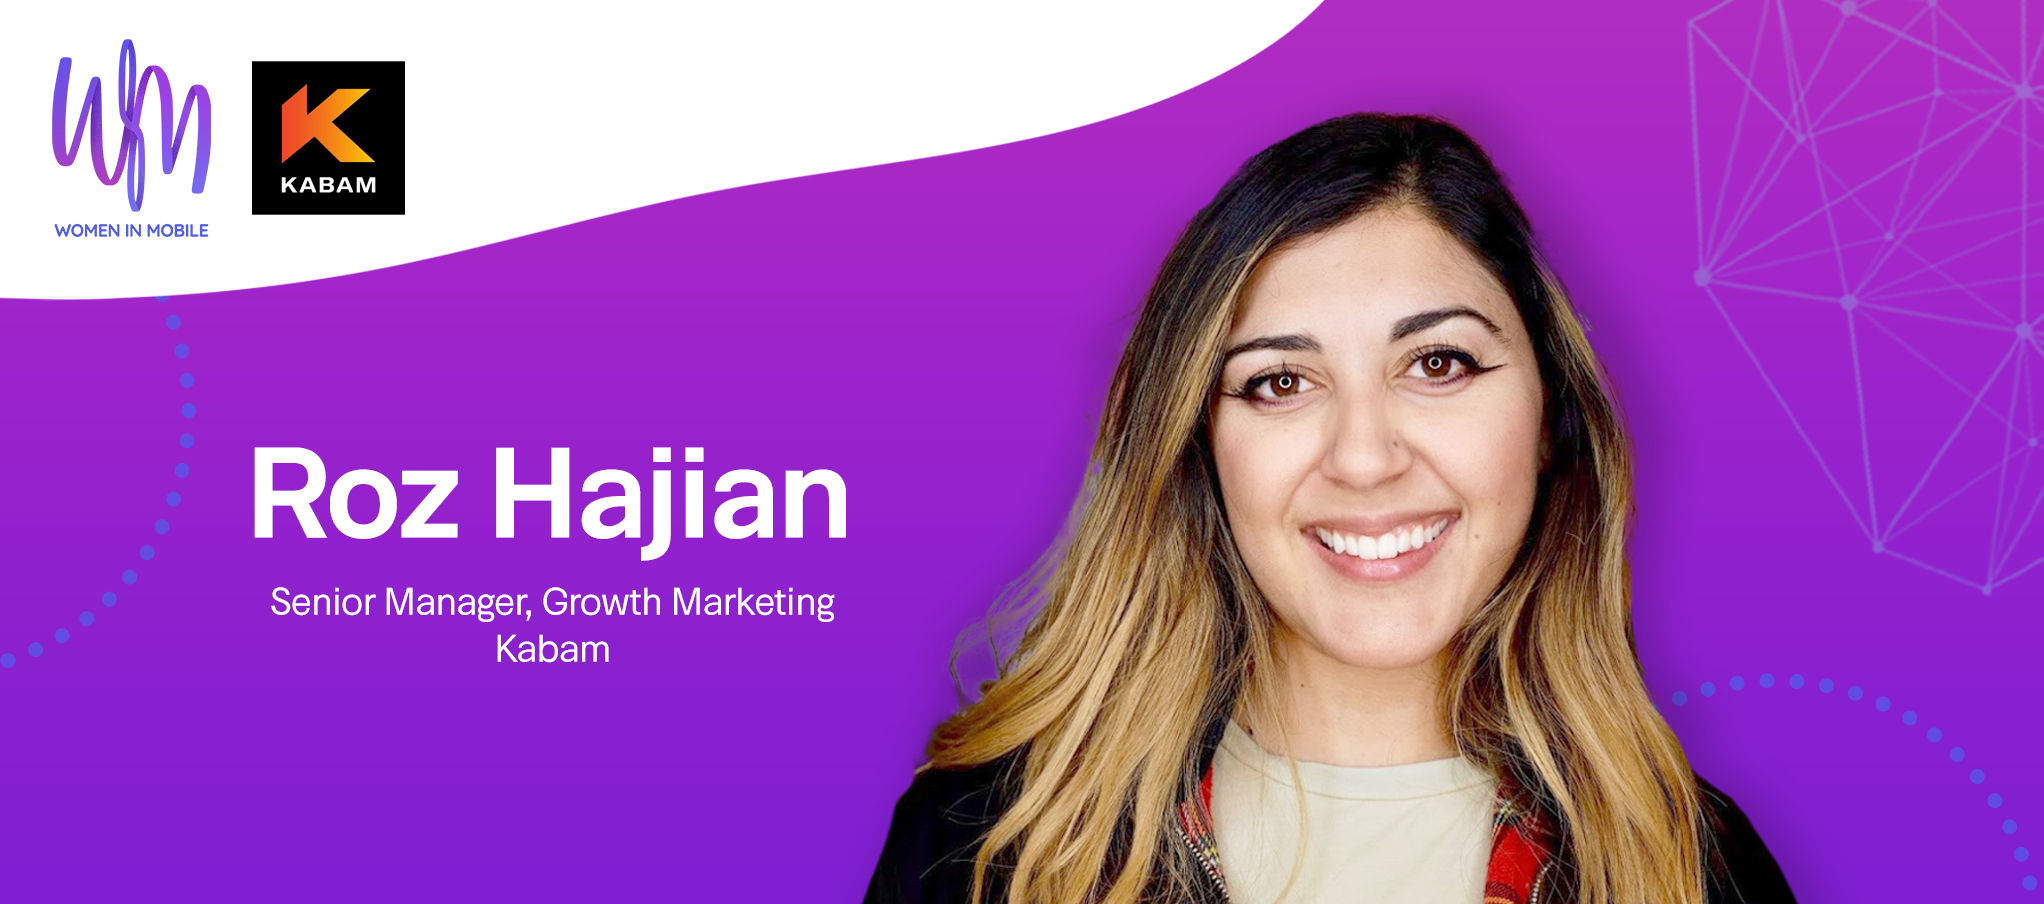 Roz Hajian, Senior Manager, Growth Marketing at Kabam at Aarki's Women in Mobile series